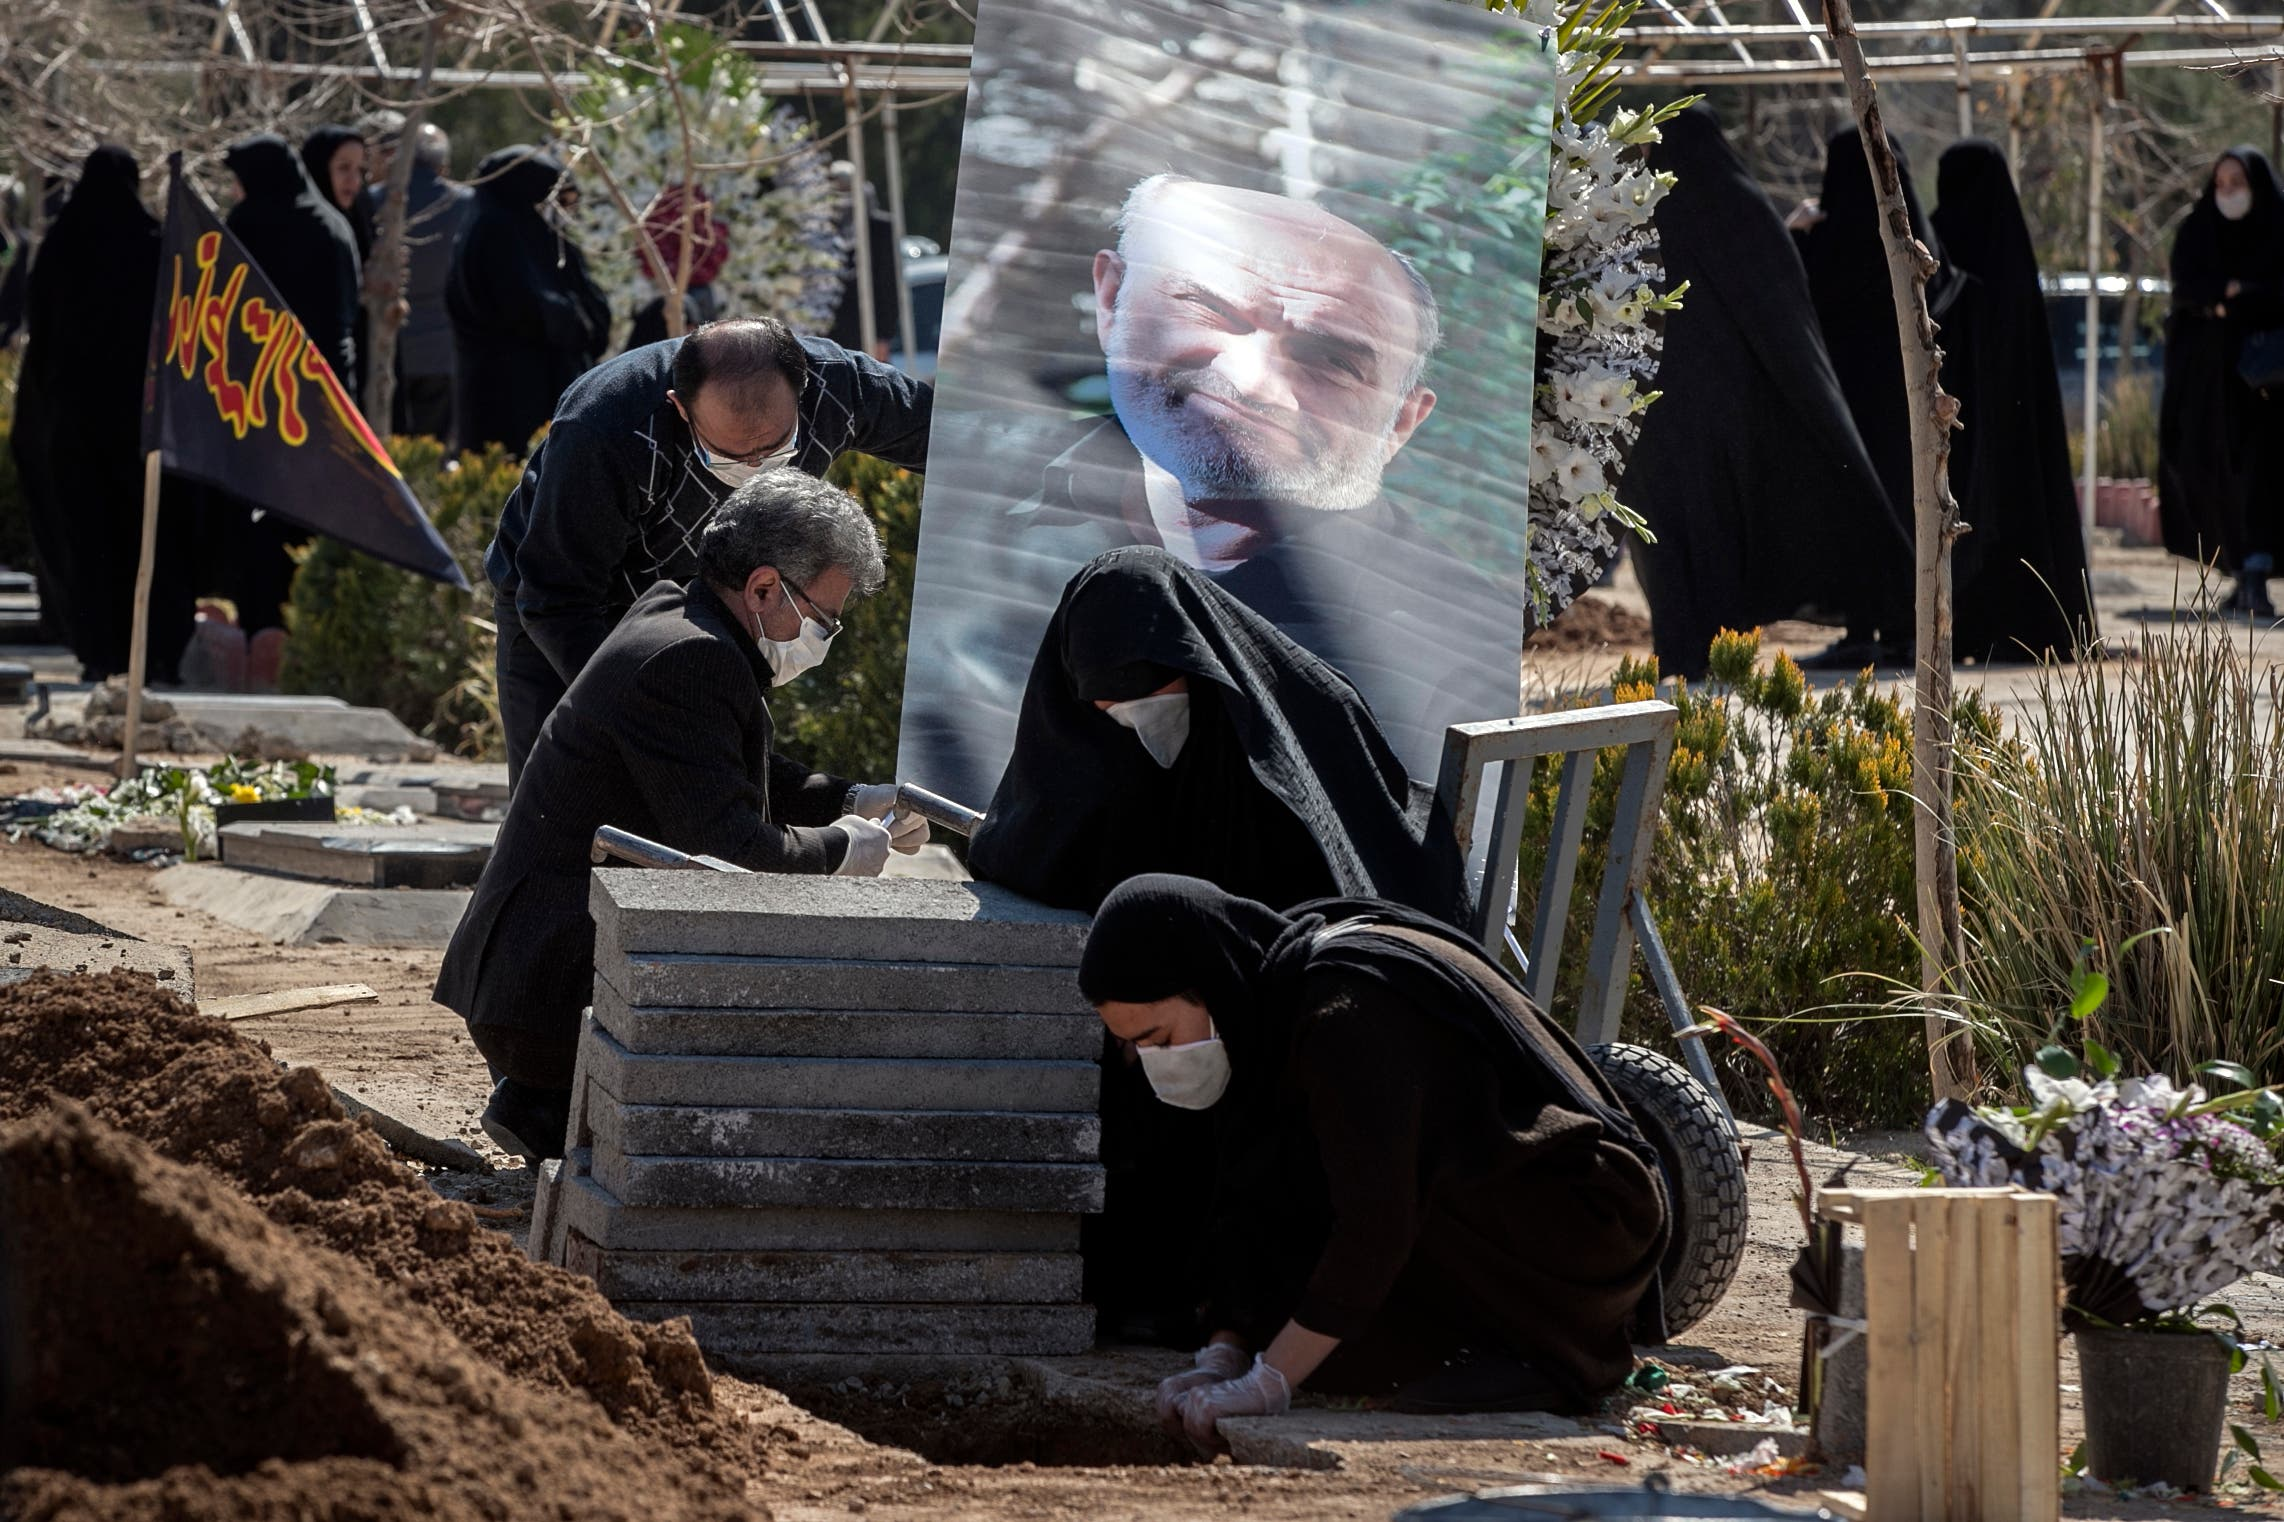 Relatives mourn over the grave of former politburo official in the Revolutionary Guard Farzad Tazari who died after being infected with the coronavirus just outside Tehran on March 10, 2020. (AP)